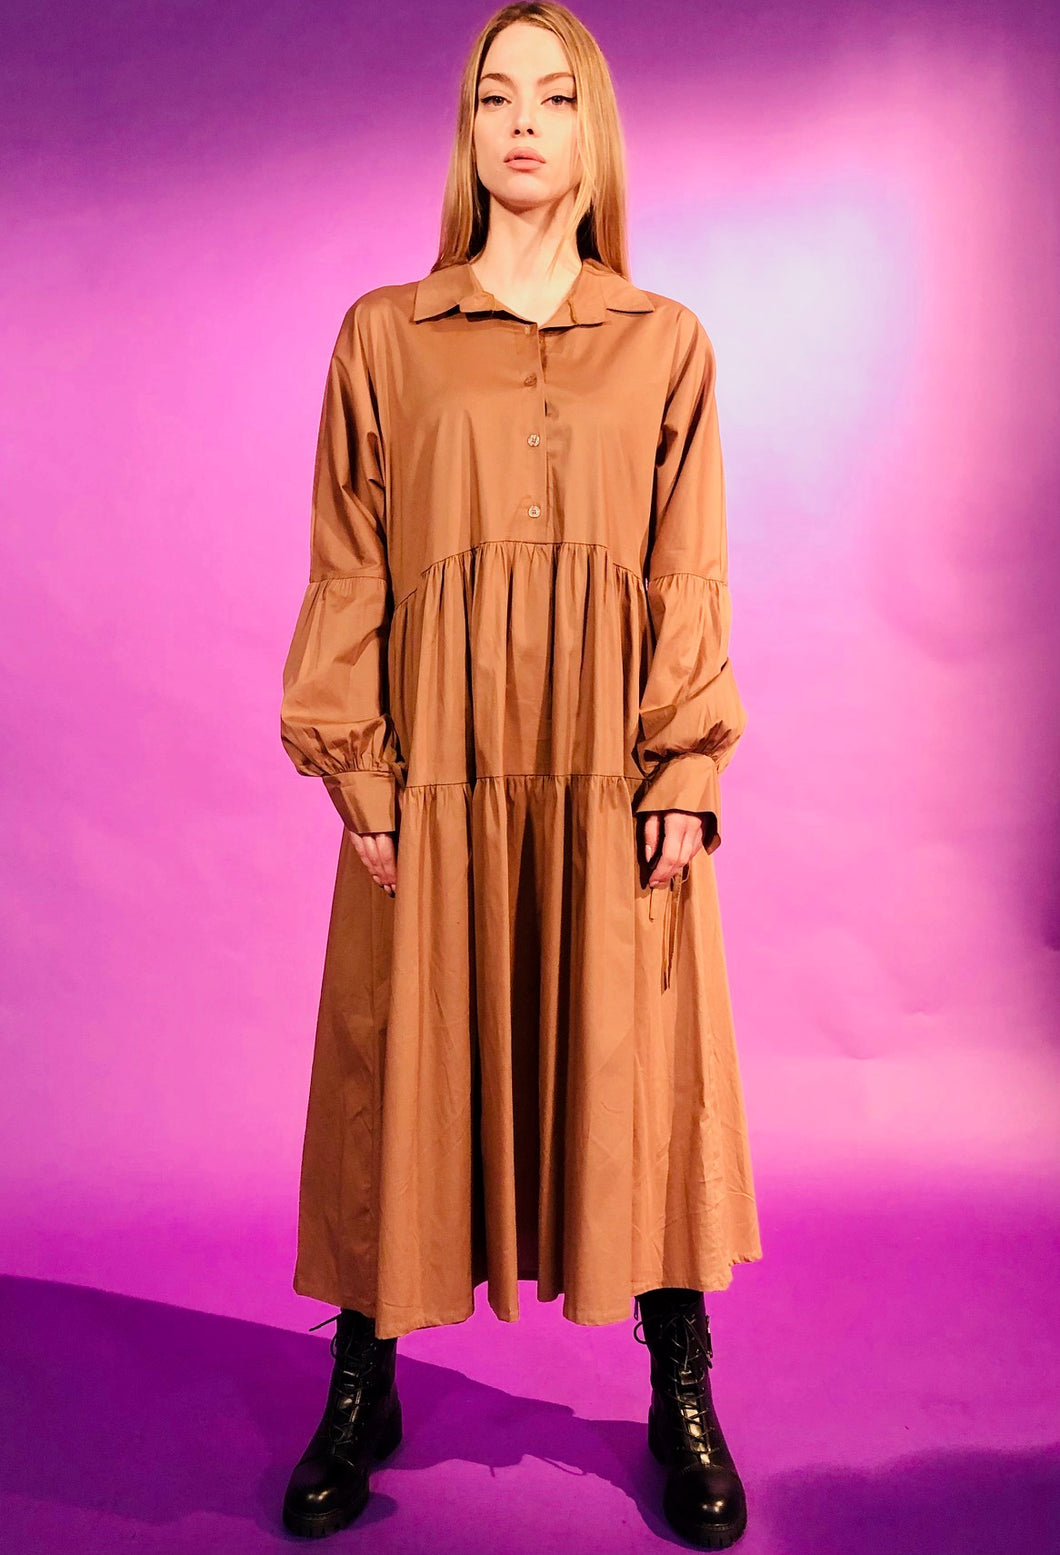 MAXI OVERSIZED DRESS WITH COLLAR - BROWN/BLUE/BEIGE